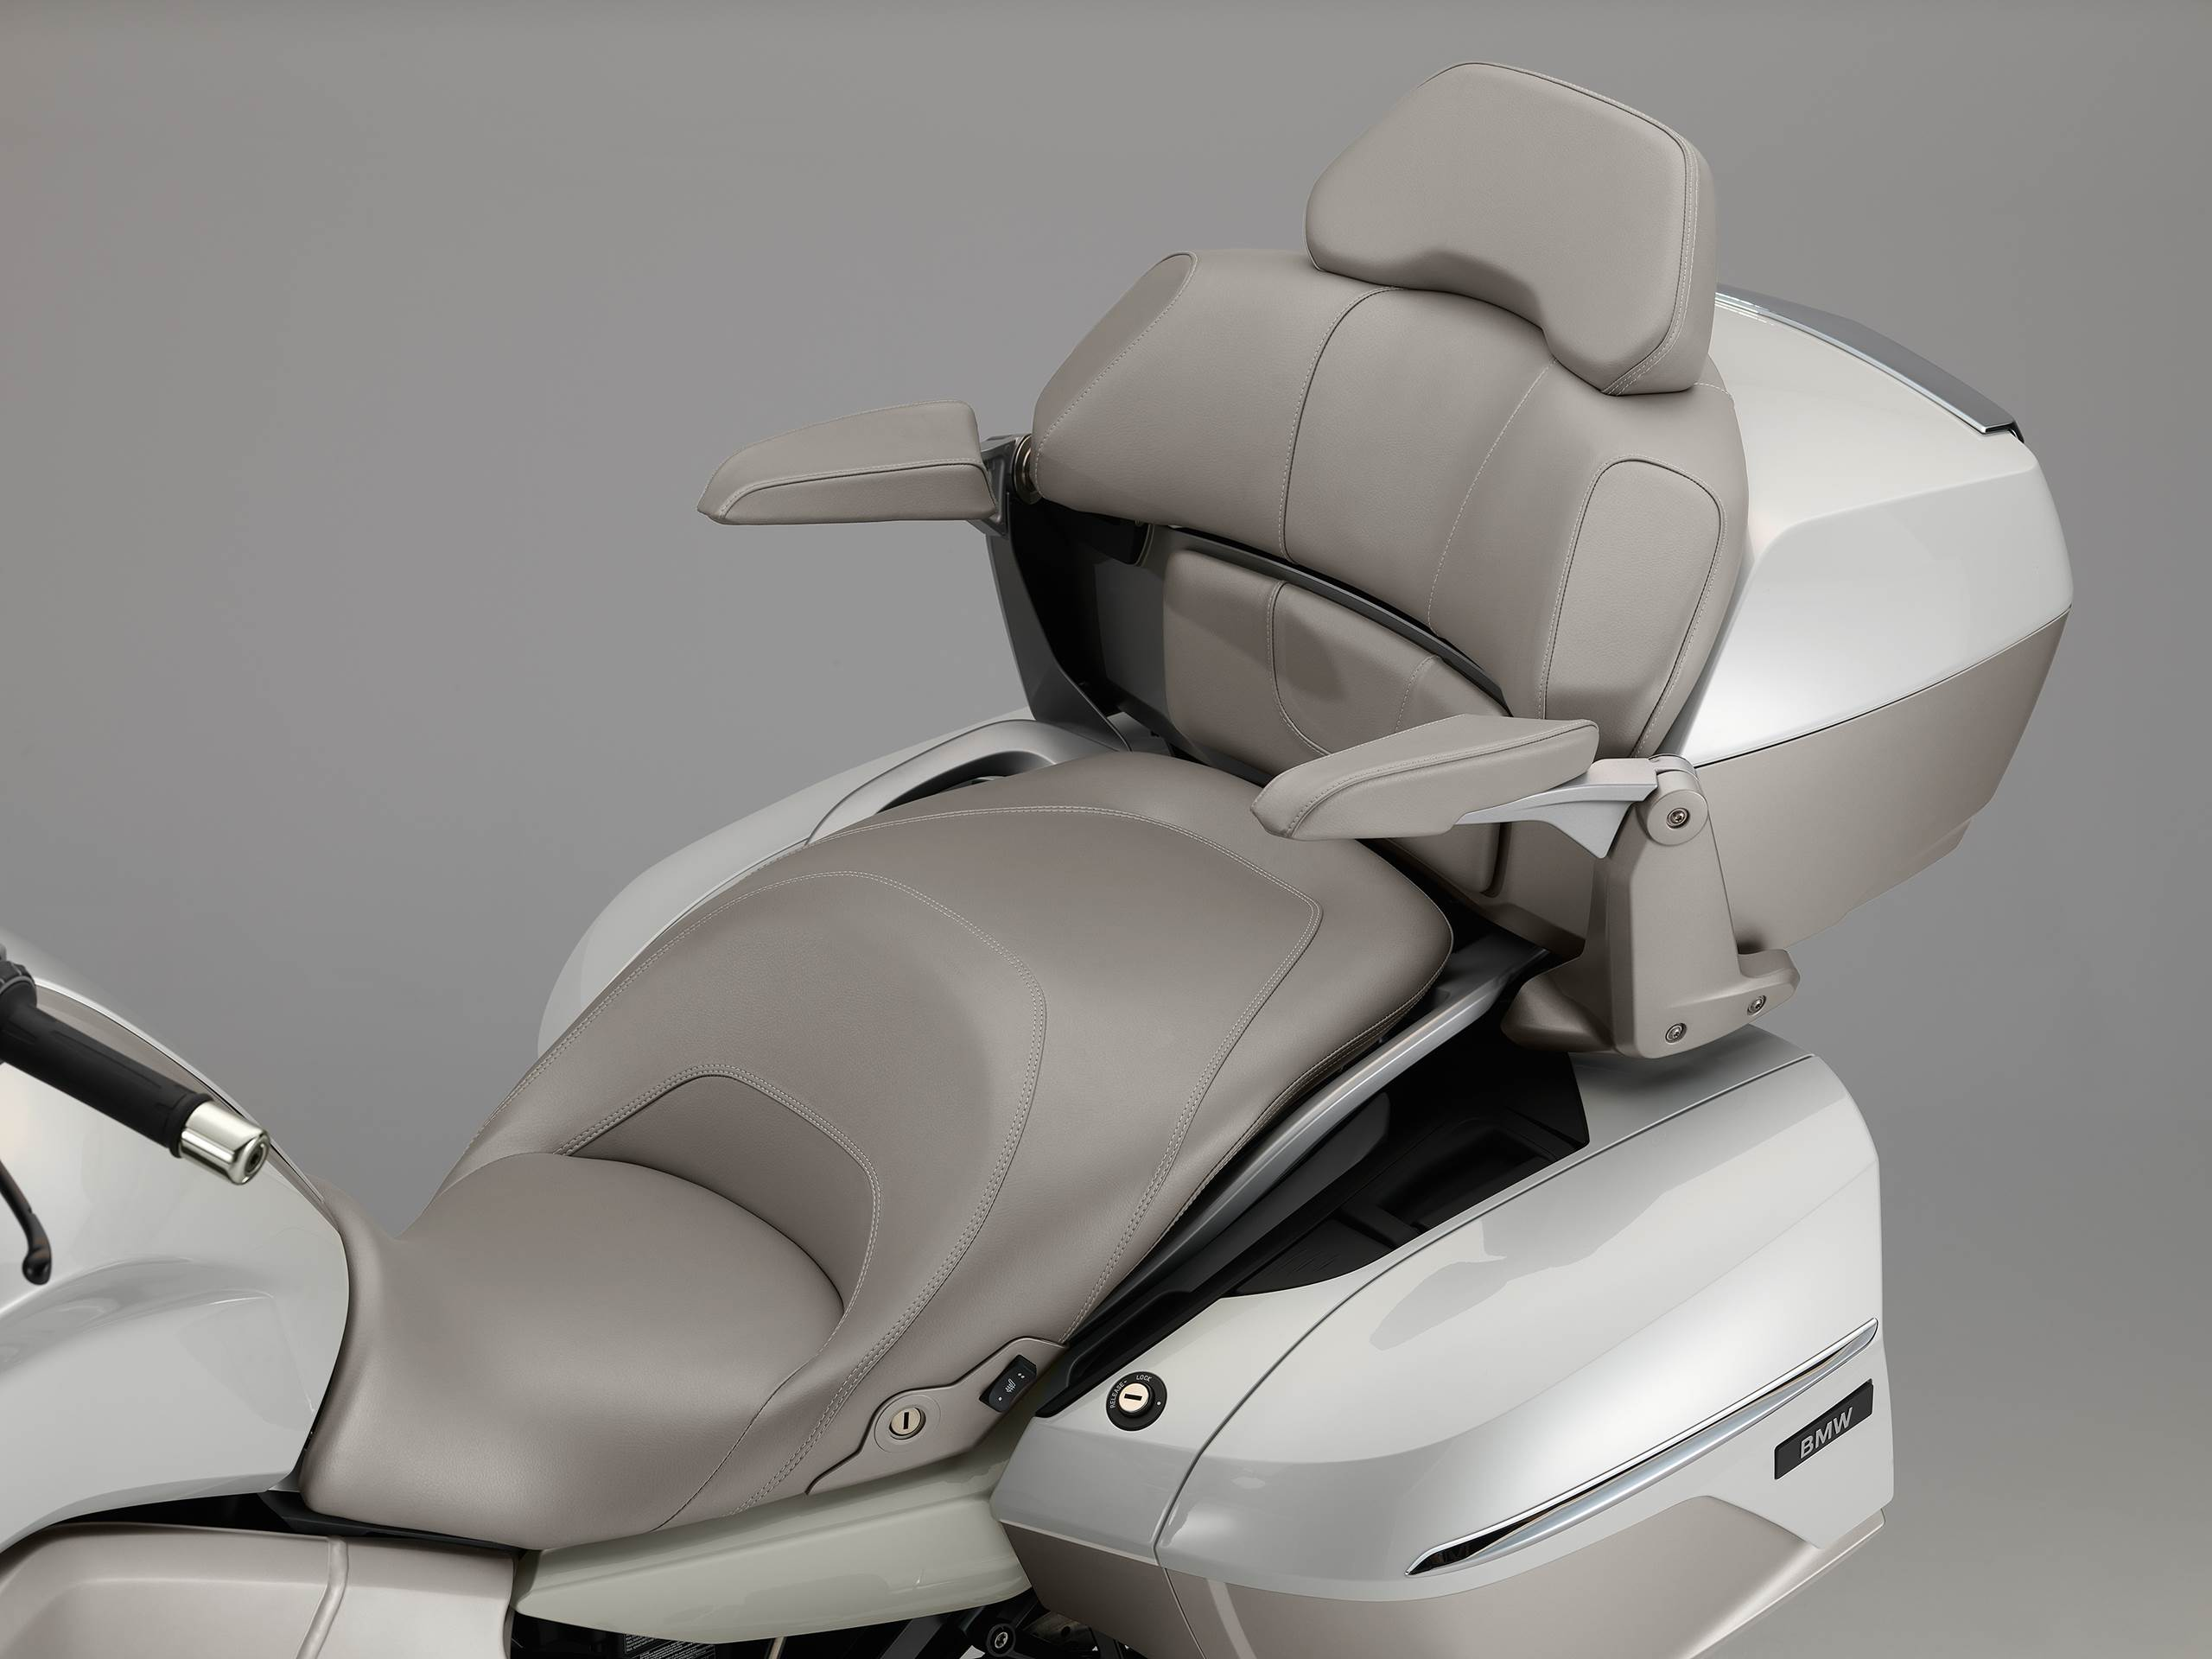 New 2014 BMW K 1600 GTL Exclusive - 09